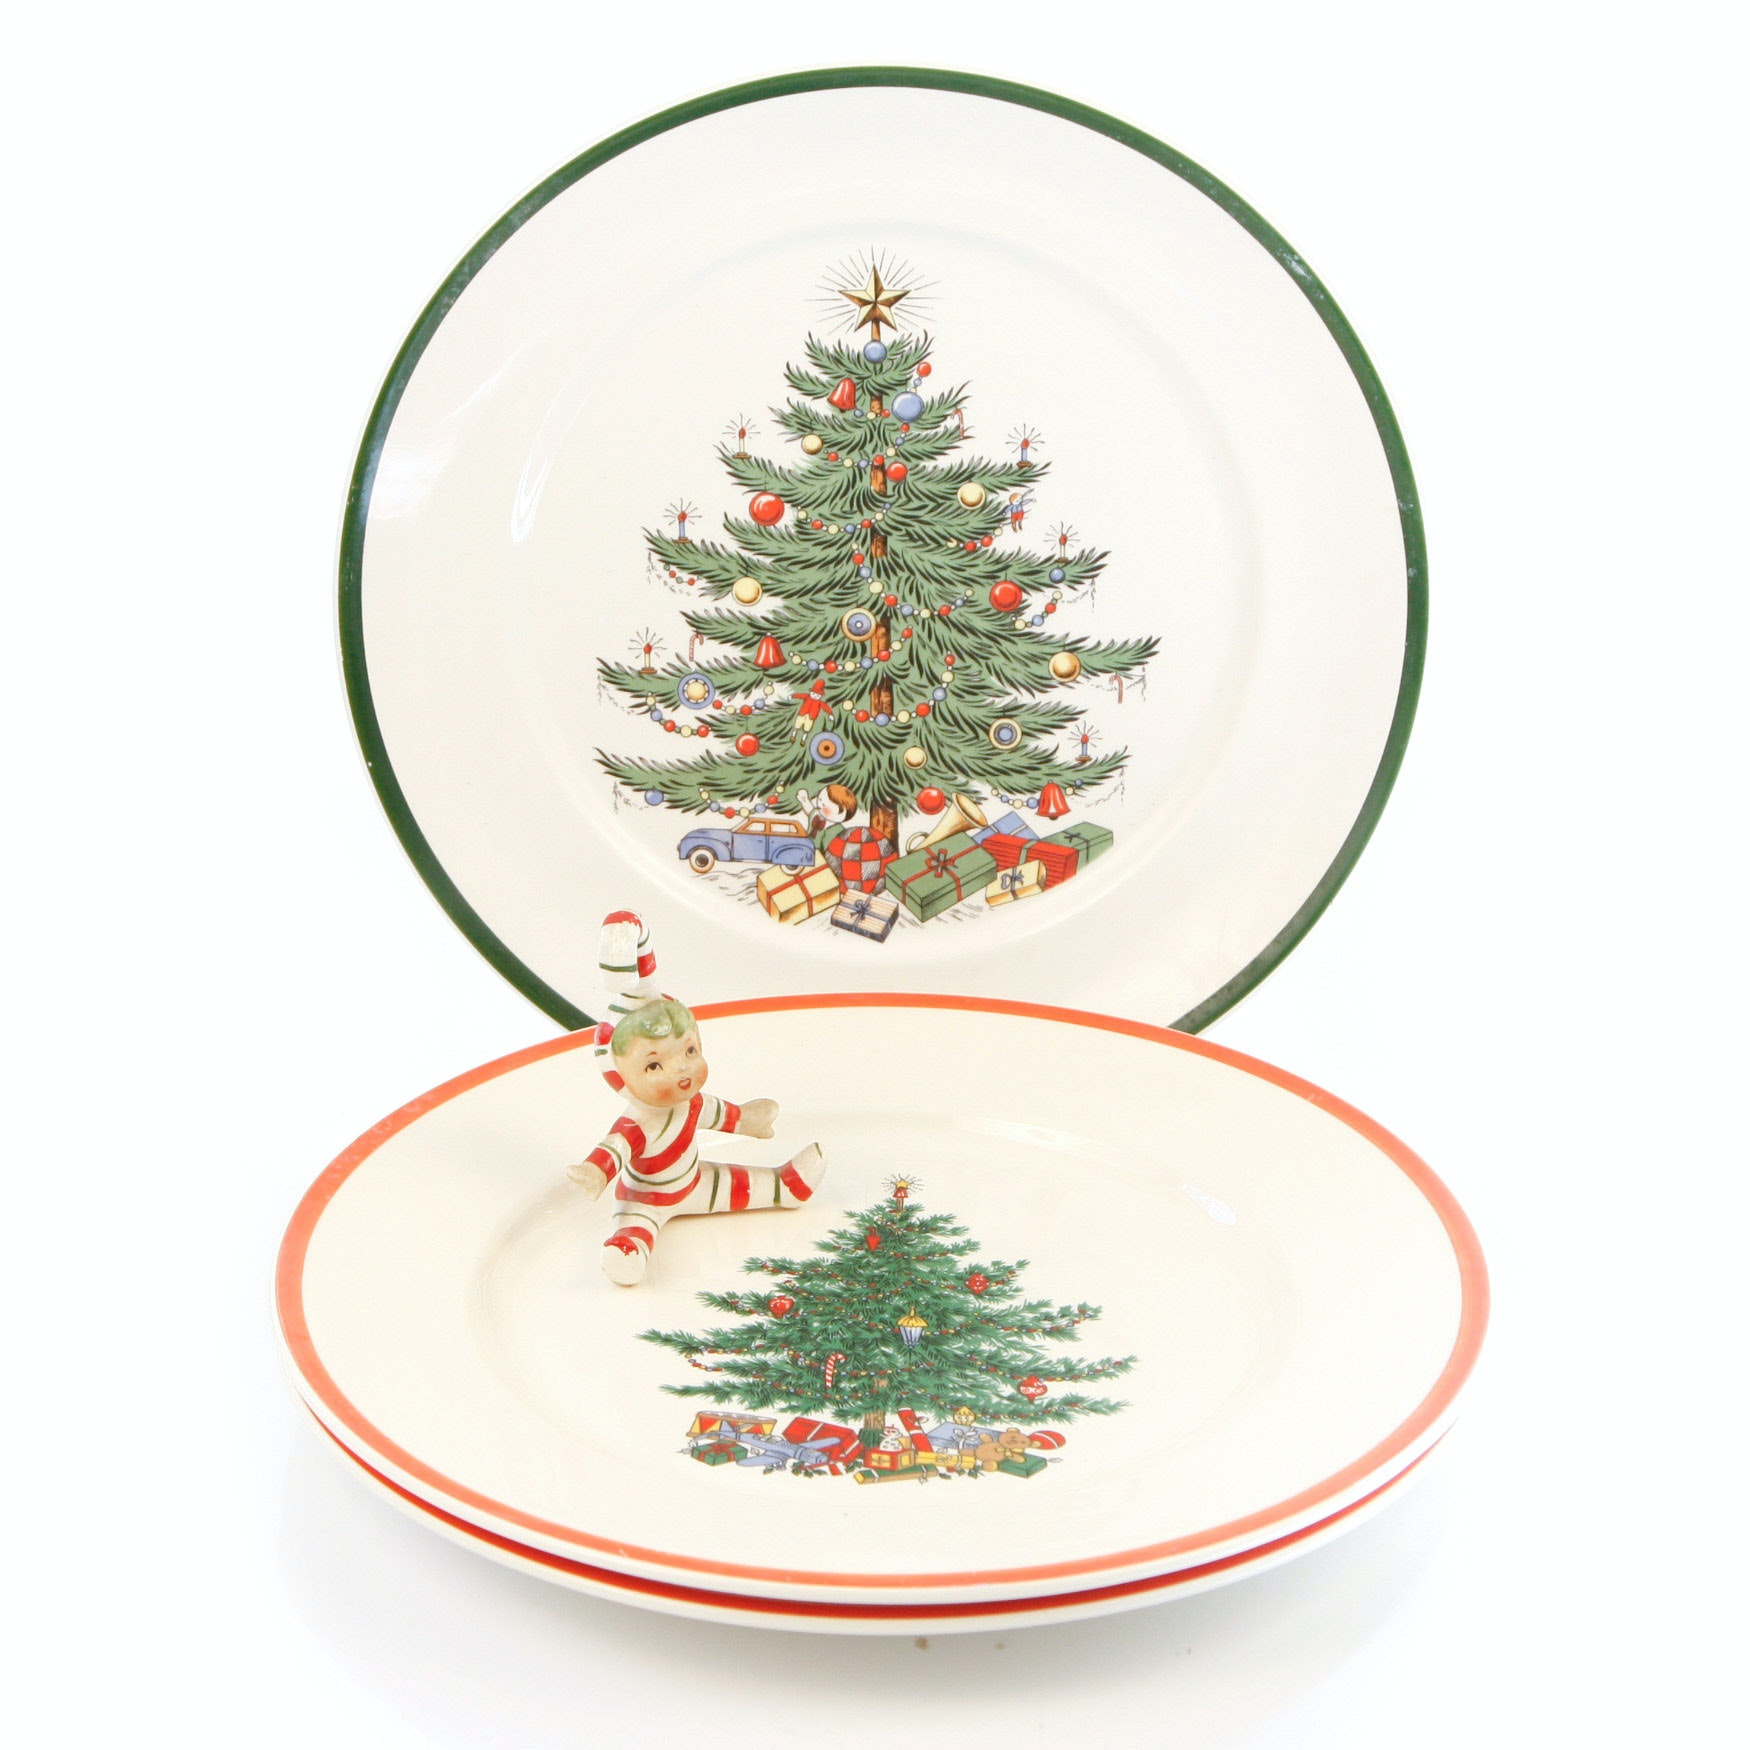 Three Holiday Christmas Plates Inc. Cuthbertson House and an Antique Ornament